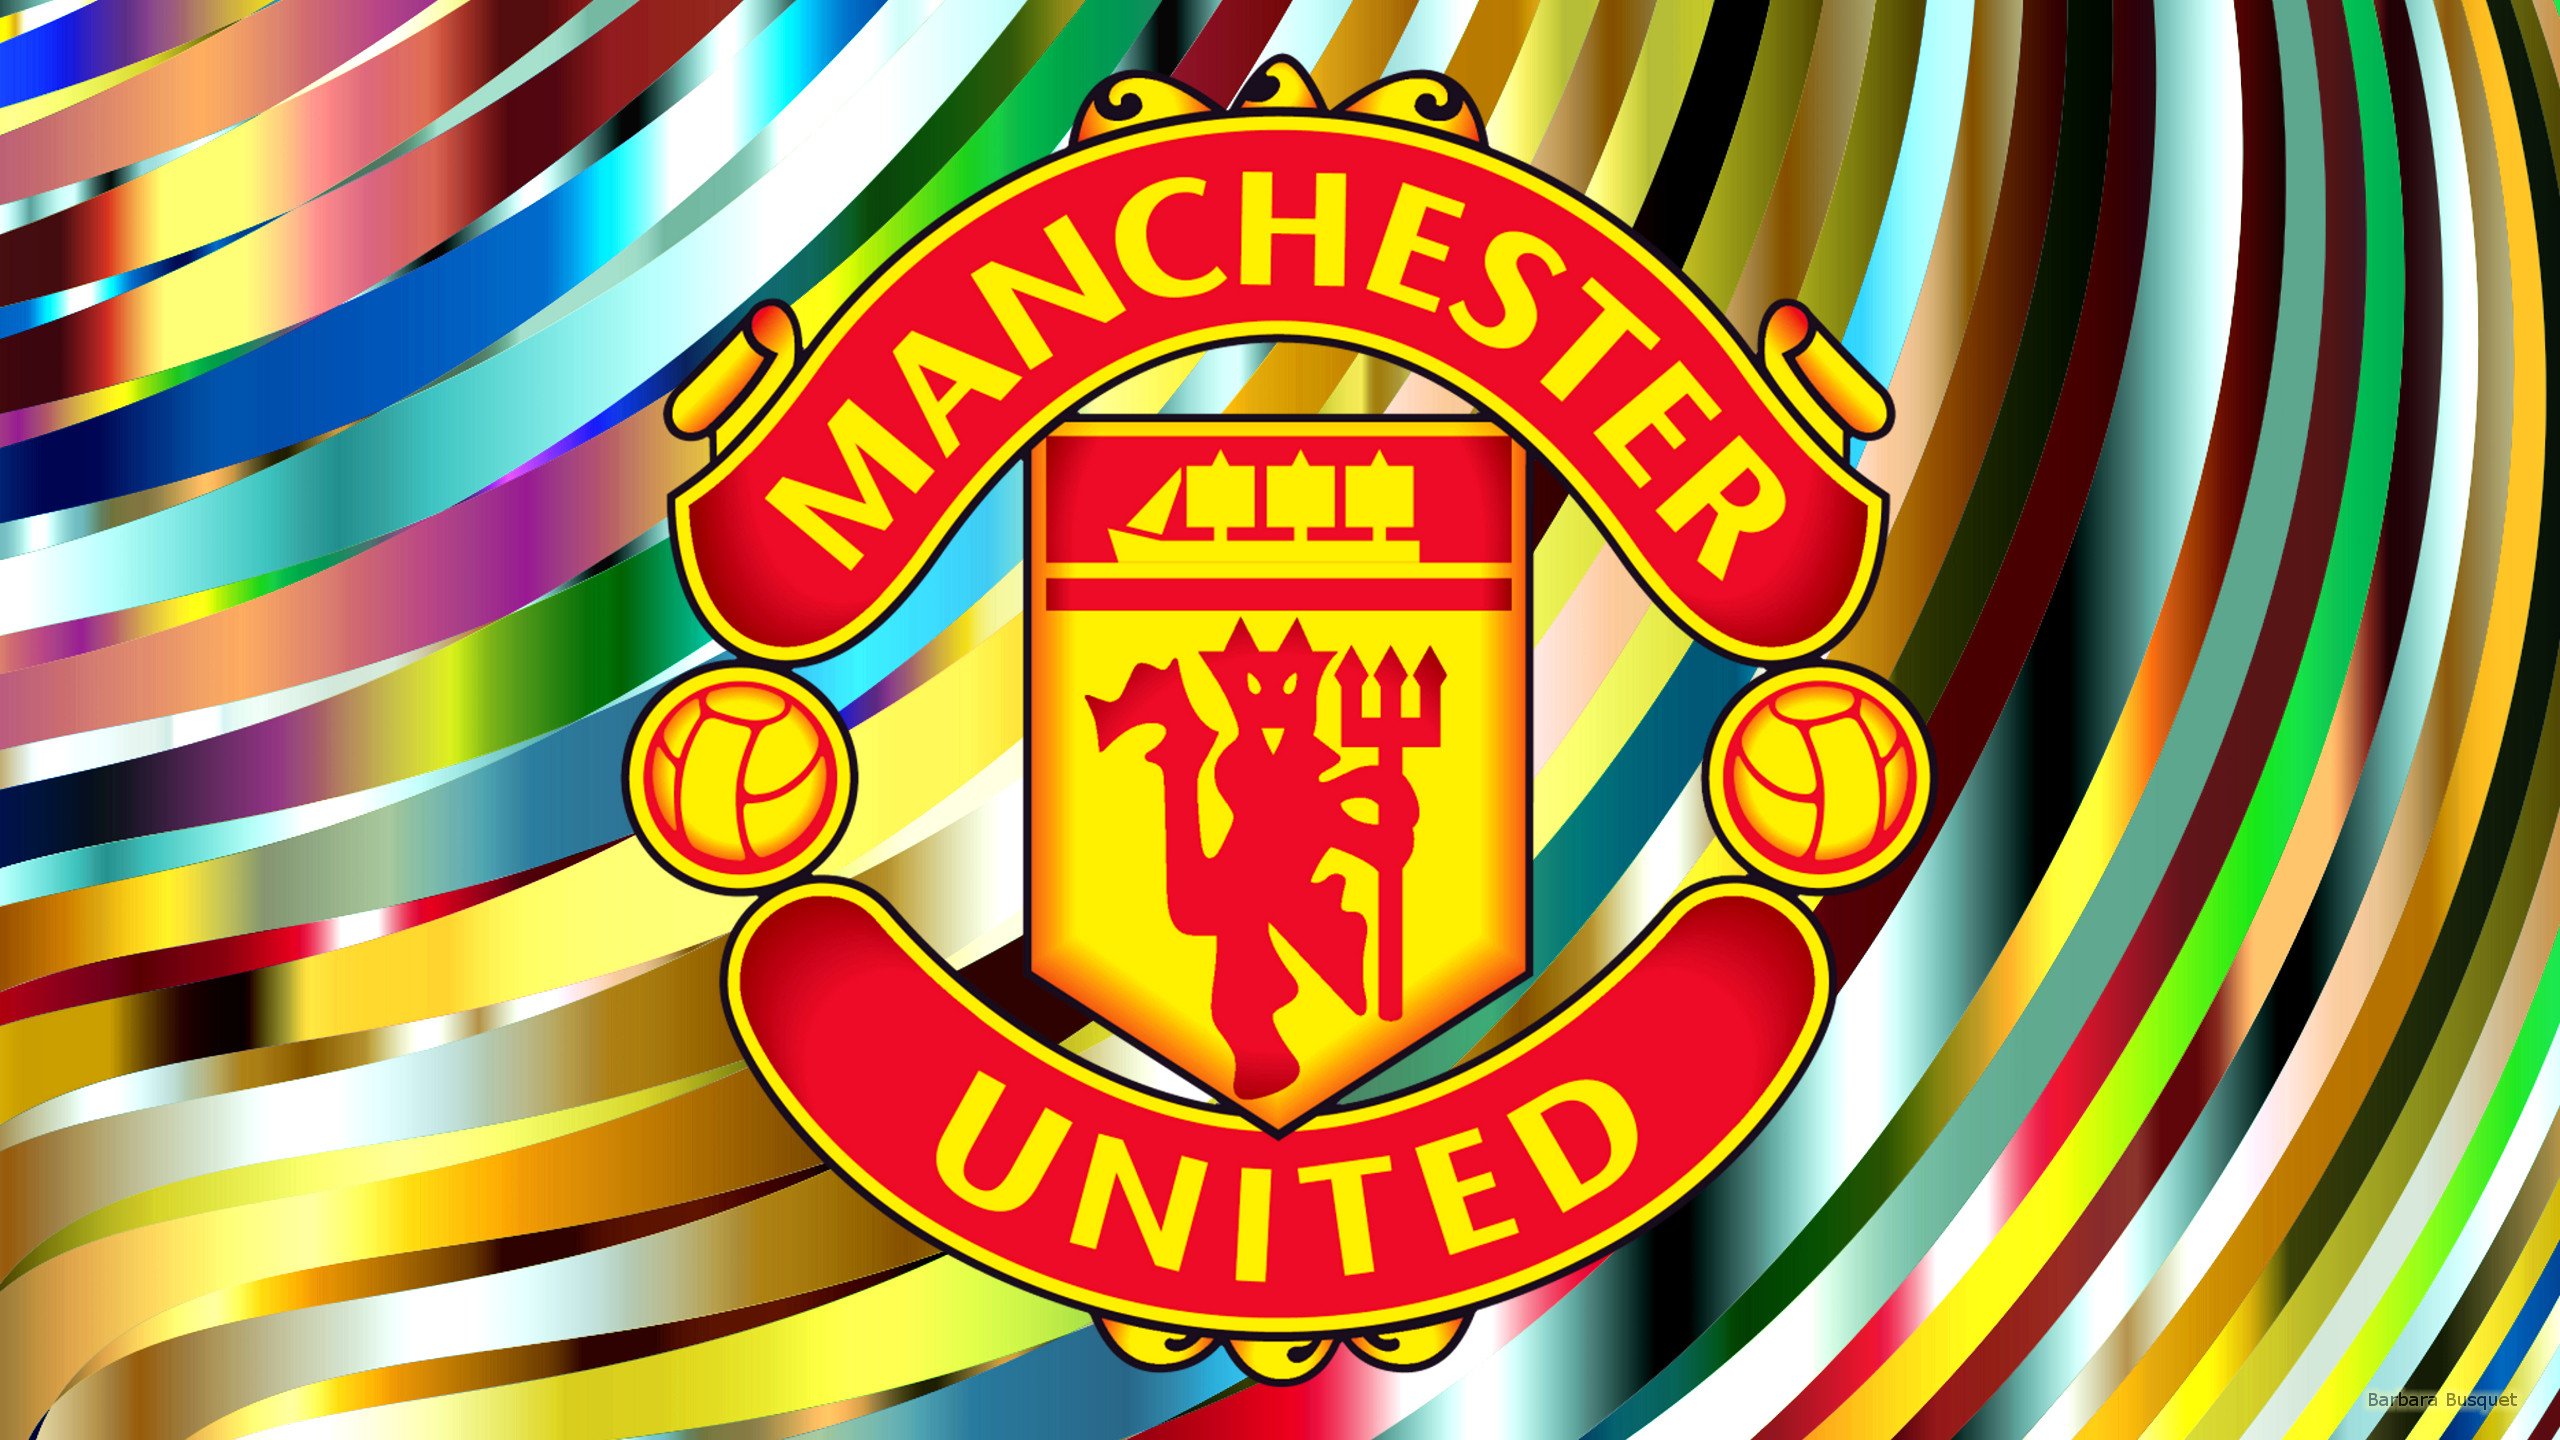 Manchester United F C HD Wallpaper